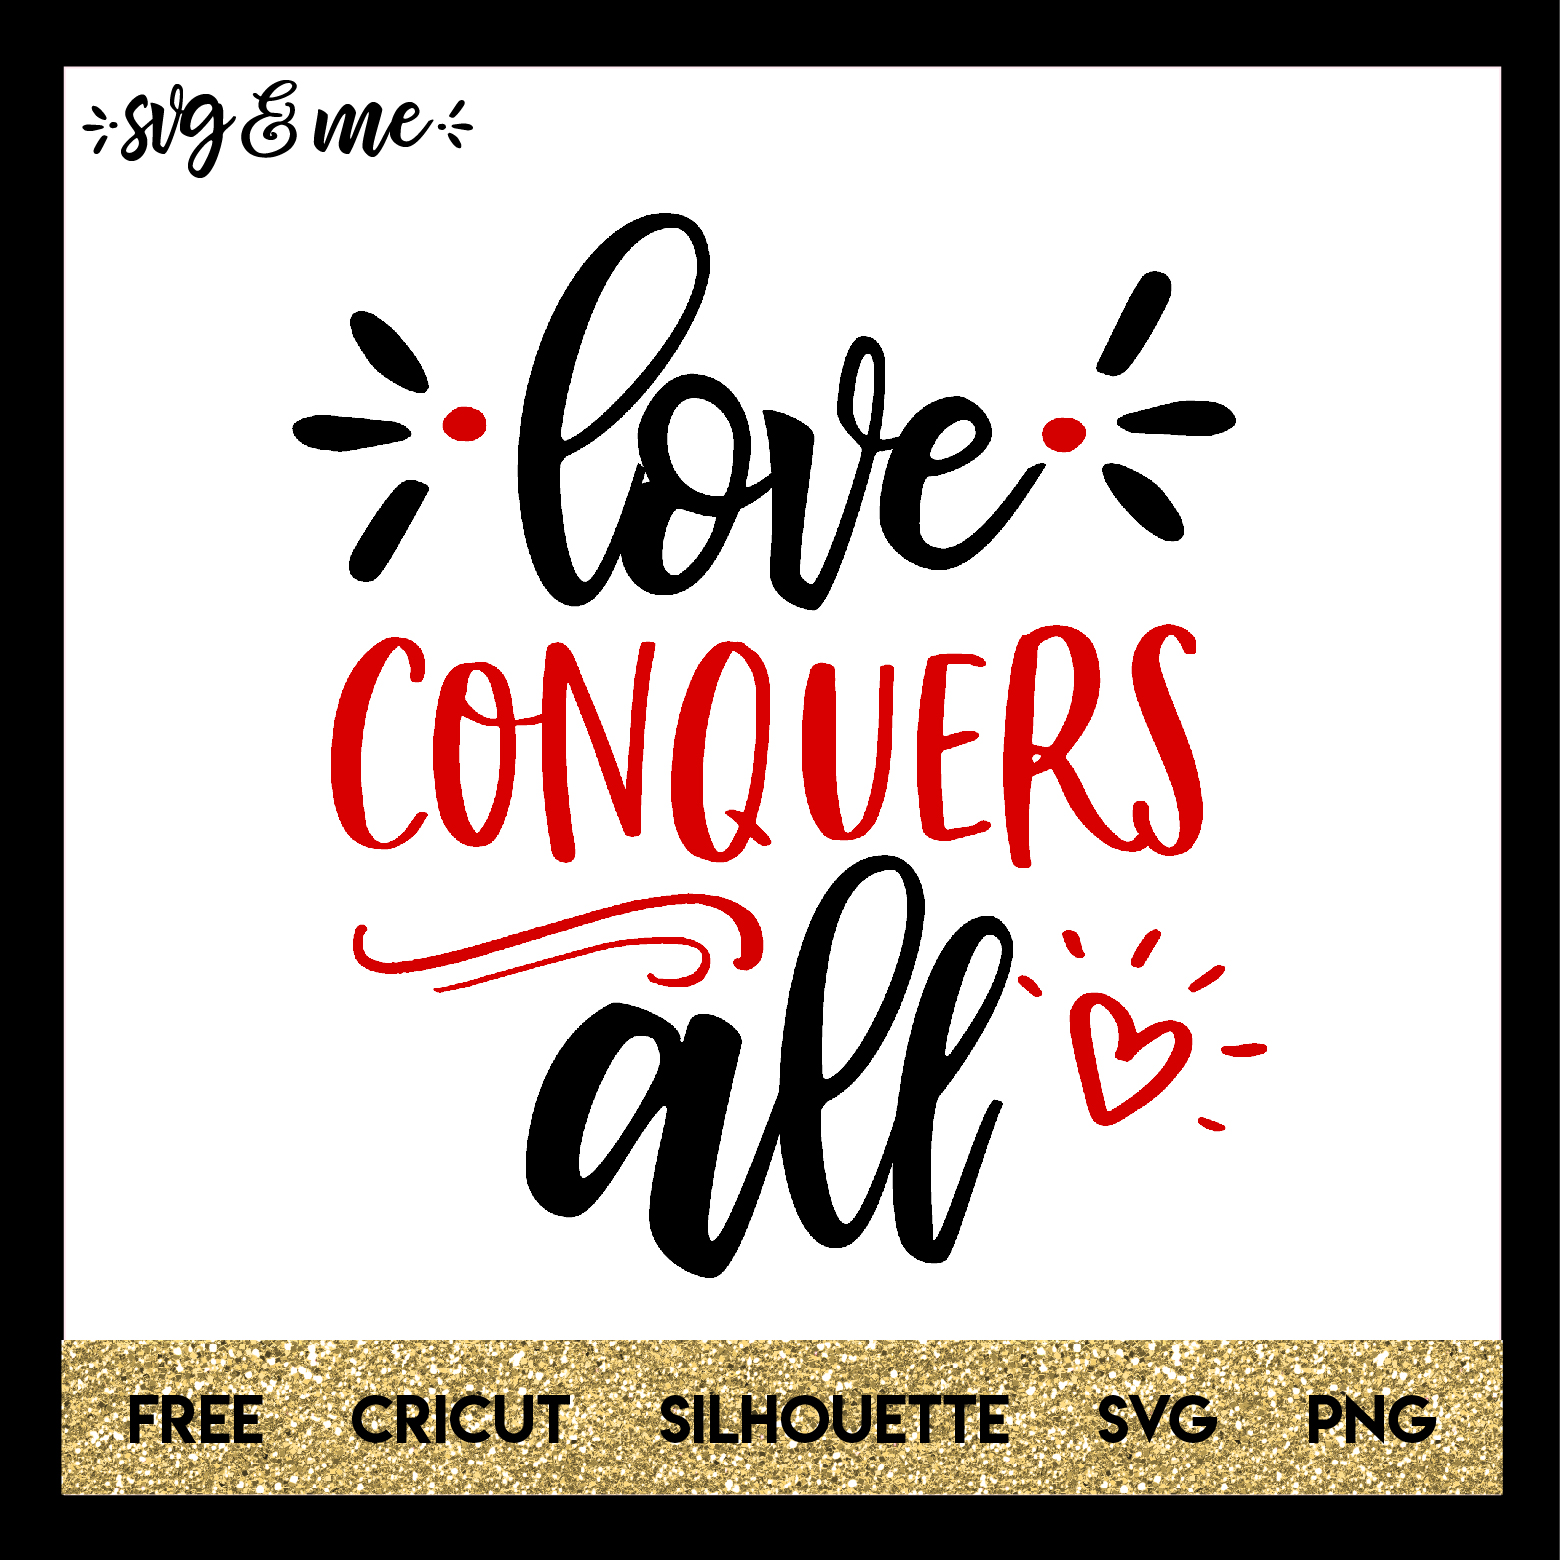 FREE SVG CUT FILE for Cricut, Silhouette - Love Conquers All Valentine's Day SVG